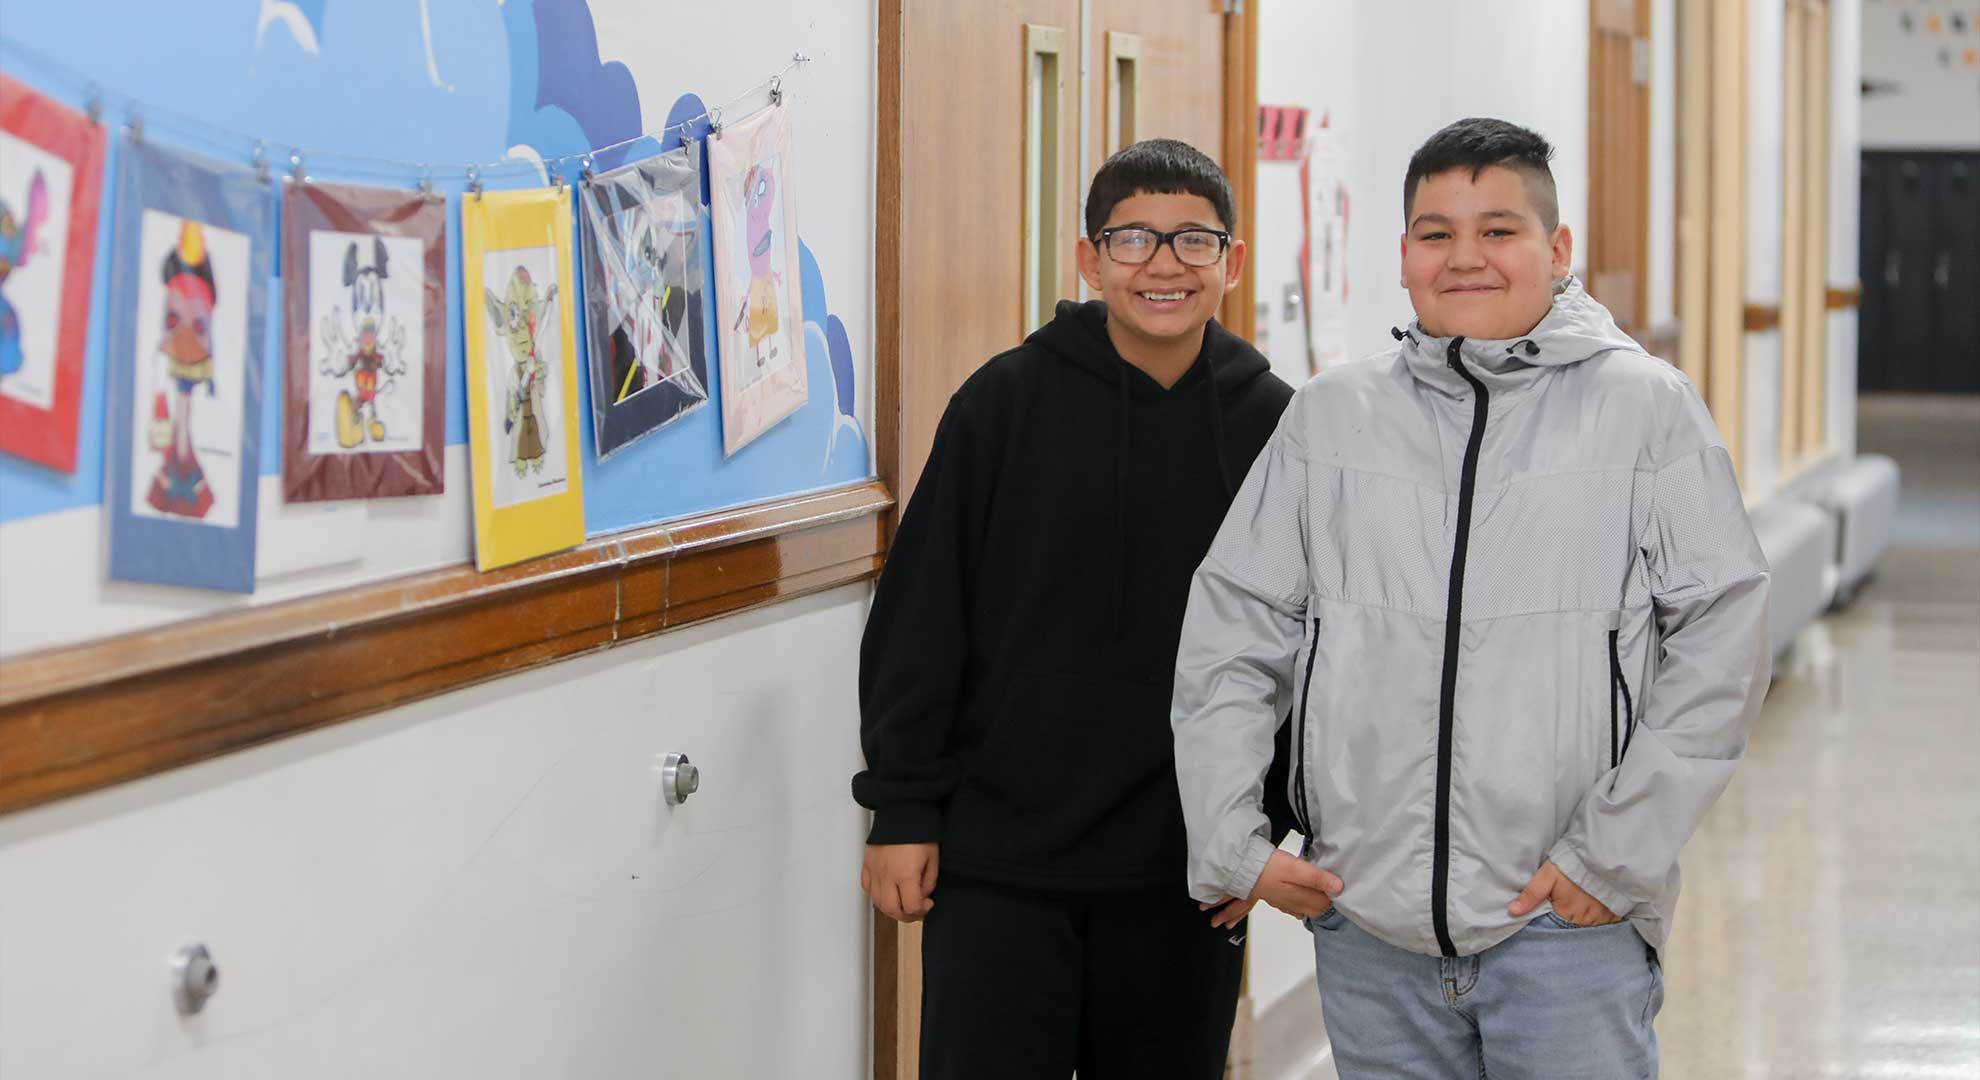 Two students in the hallway